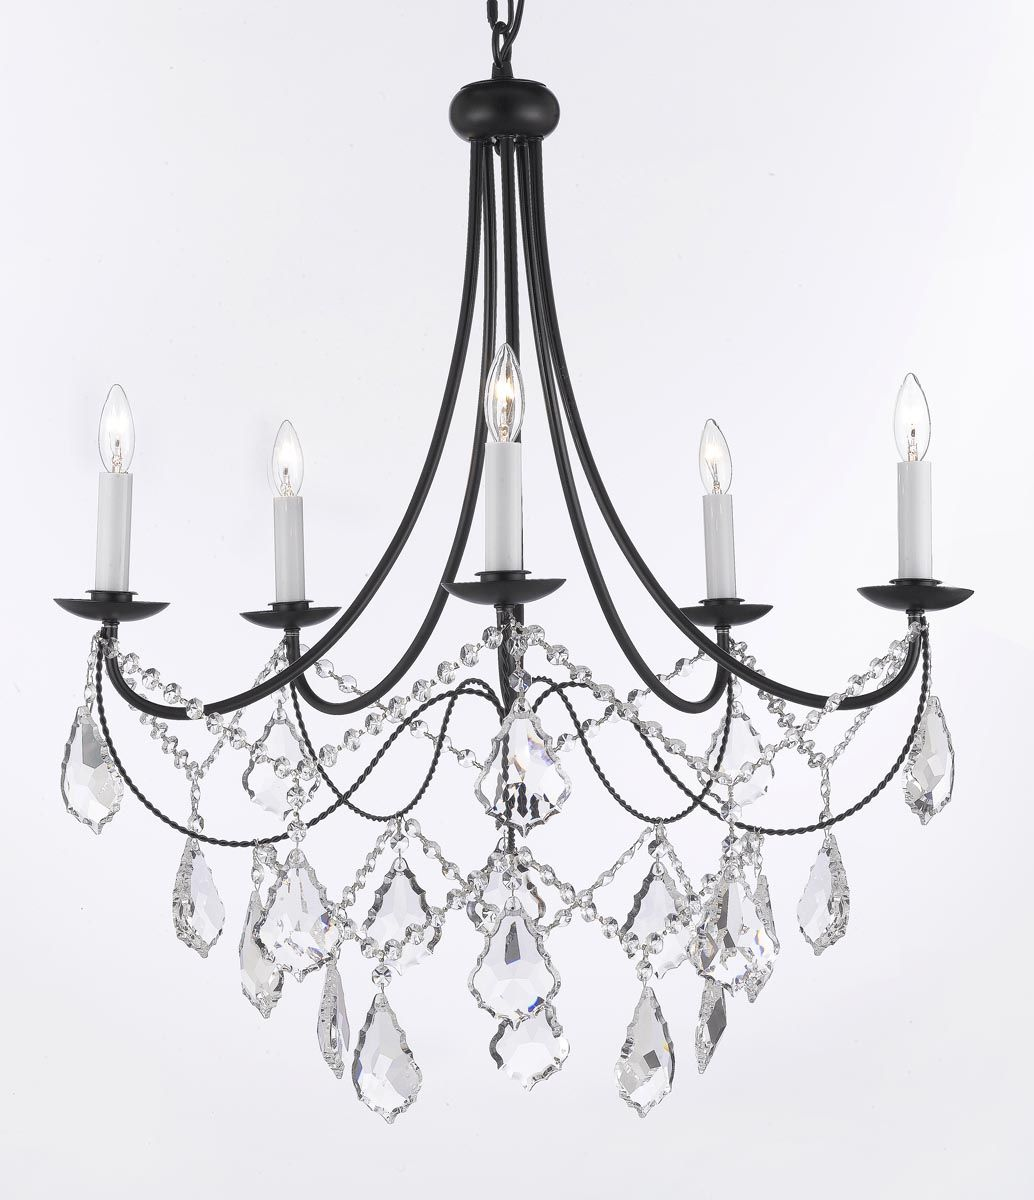 A7 b124035sw gallery wrought with crystal wrought iron gallery wrought with crystal empress crystal tm wrought iron chandelier chandeliers lighting x arubaitofo Choice Image